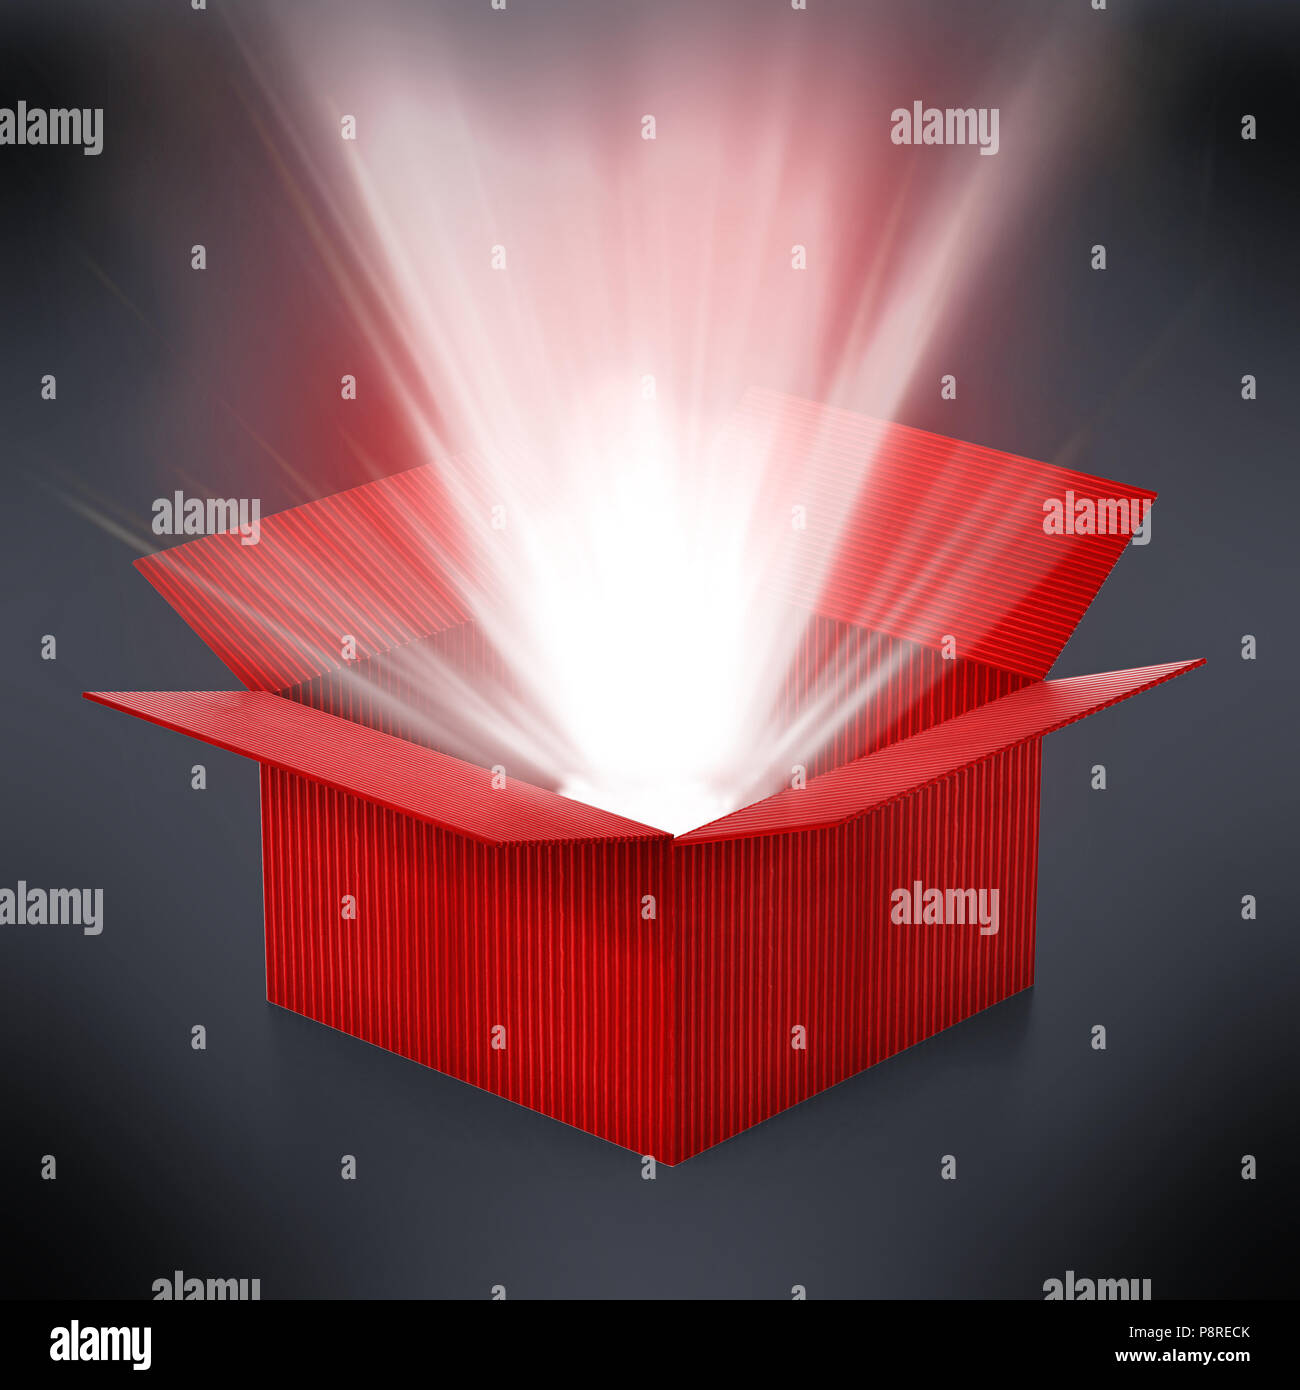 Red cardboard box with glowing light ray standing out. 3D illustration. - Stock Image